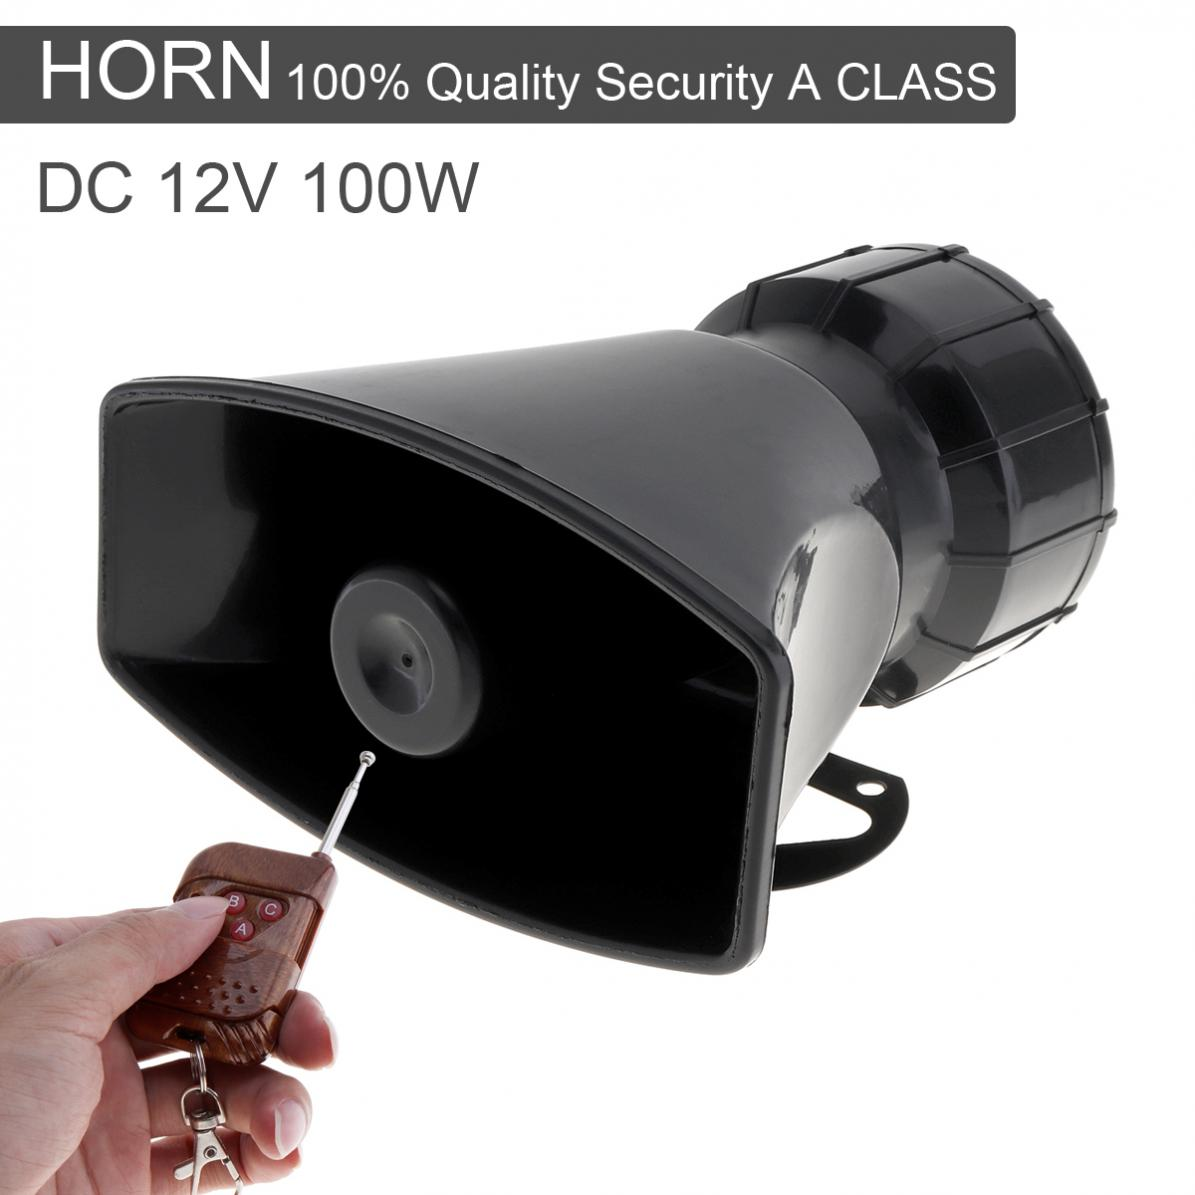 12V 100W Plastic 7 Sound Loud Car Warning Alarm Police Fire Siren Horn Speaker with Brown Wireless Remote Controller